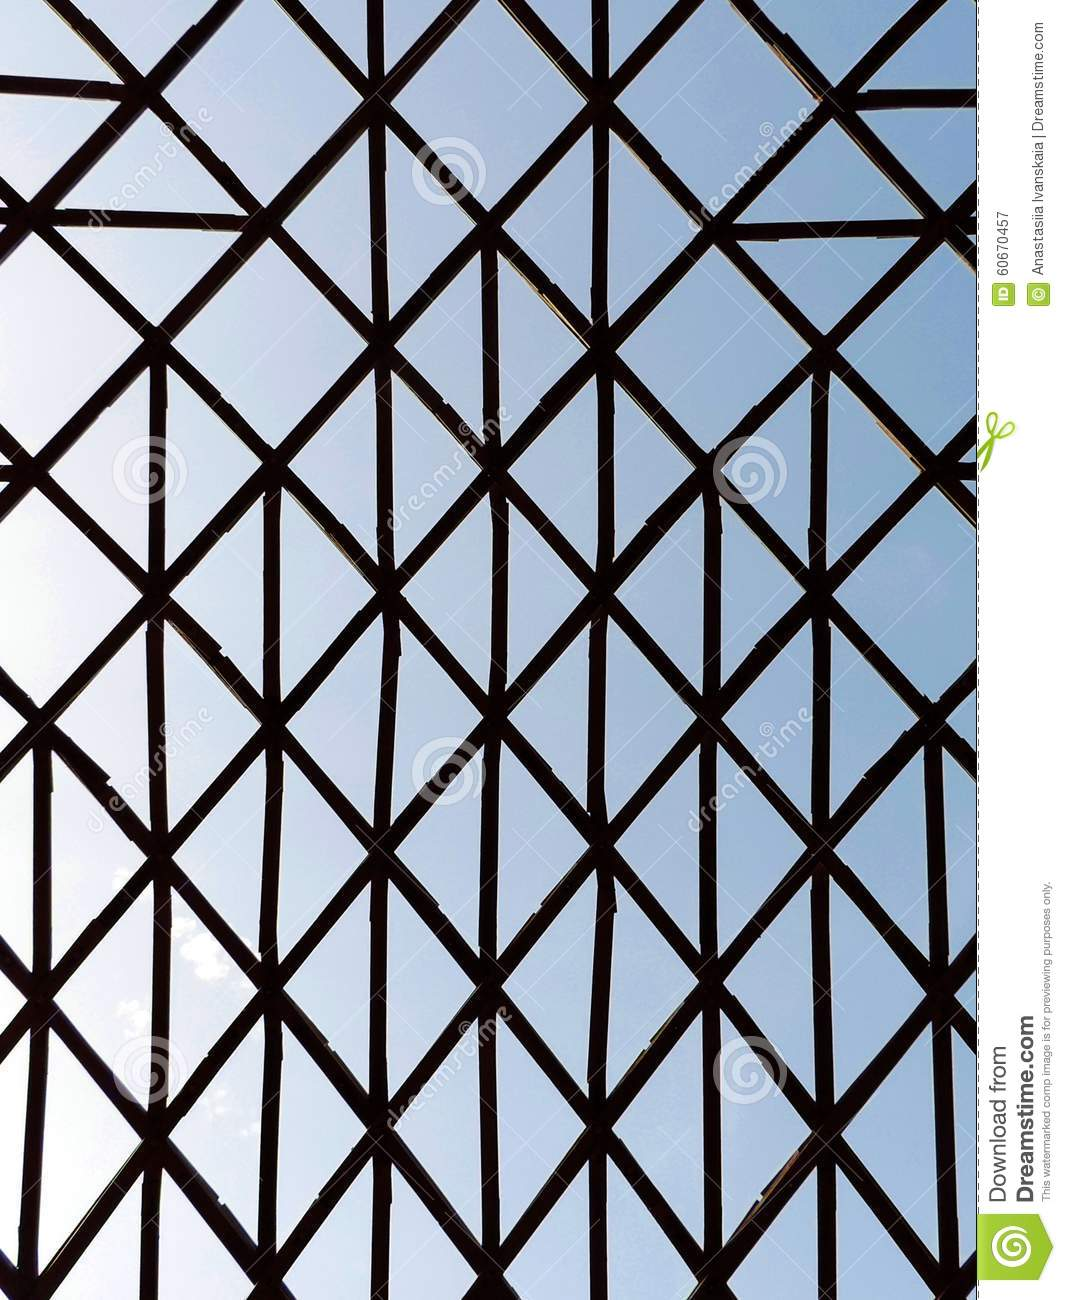 Geometric unusual structure with crossed wooden bars.